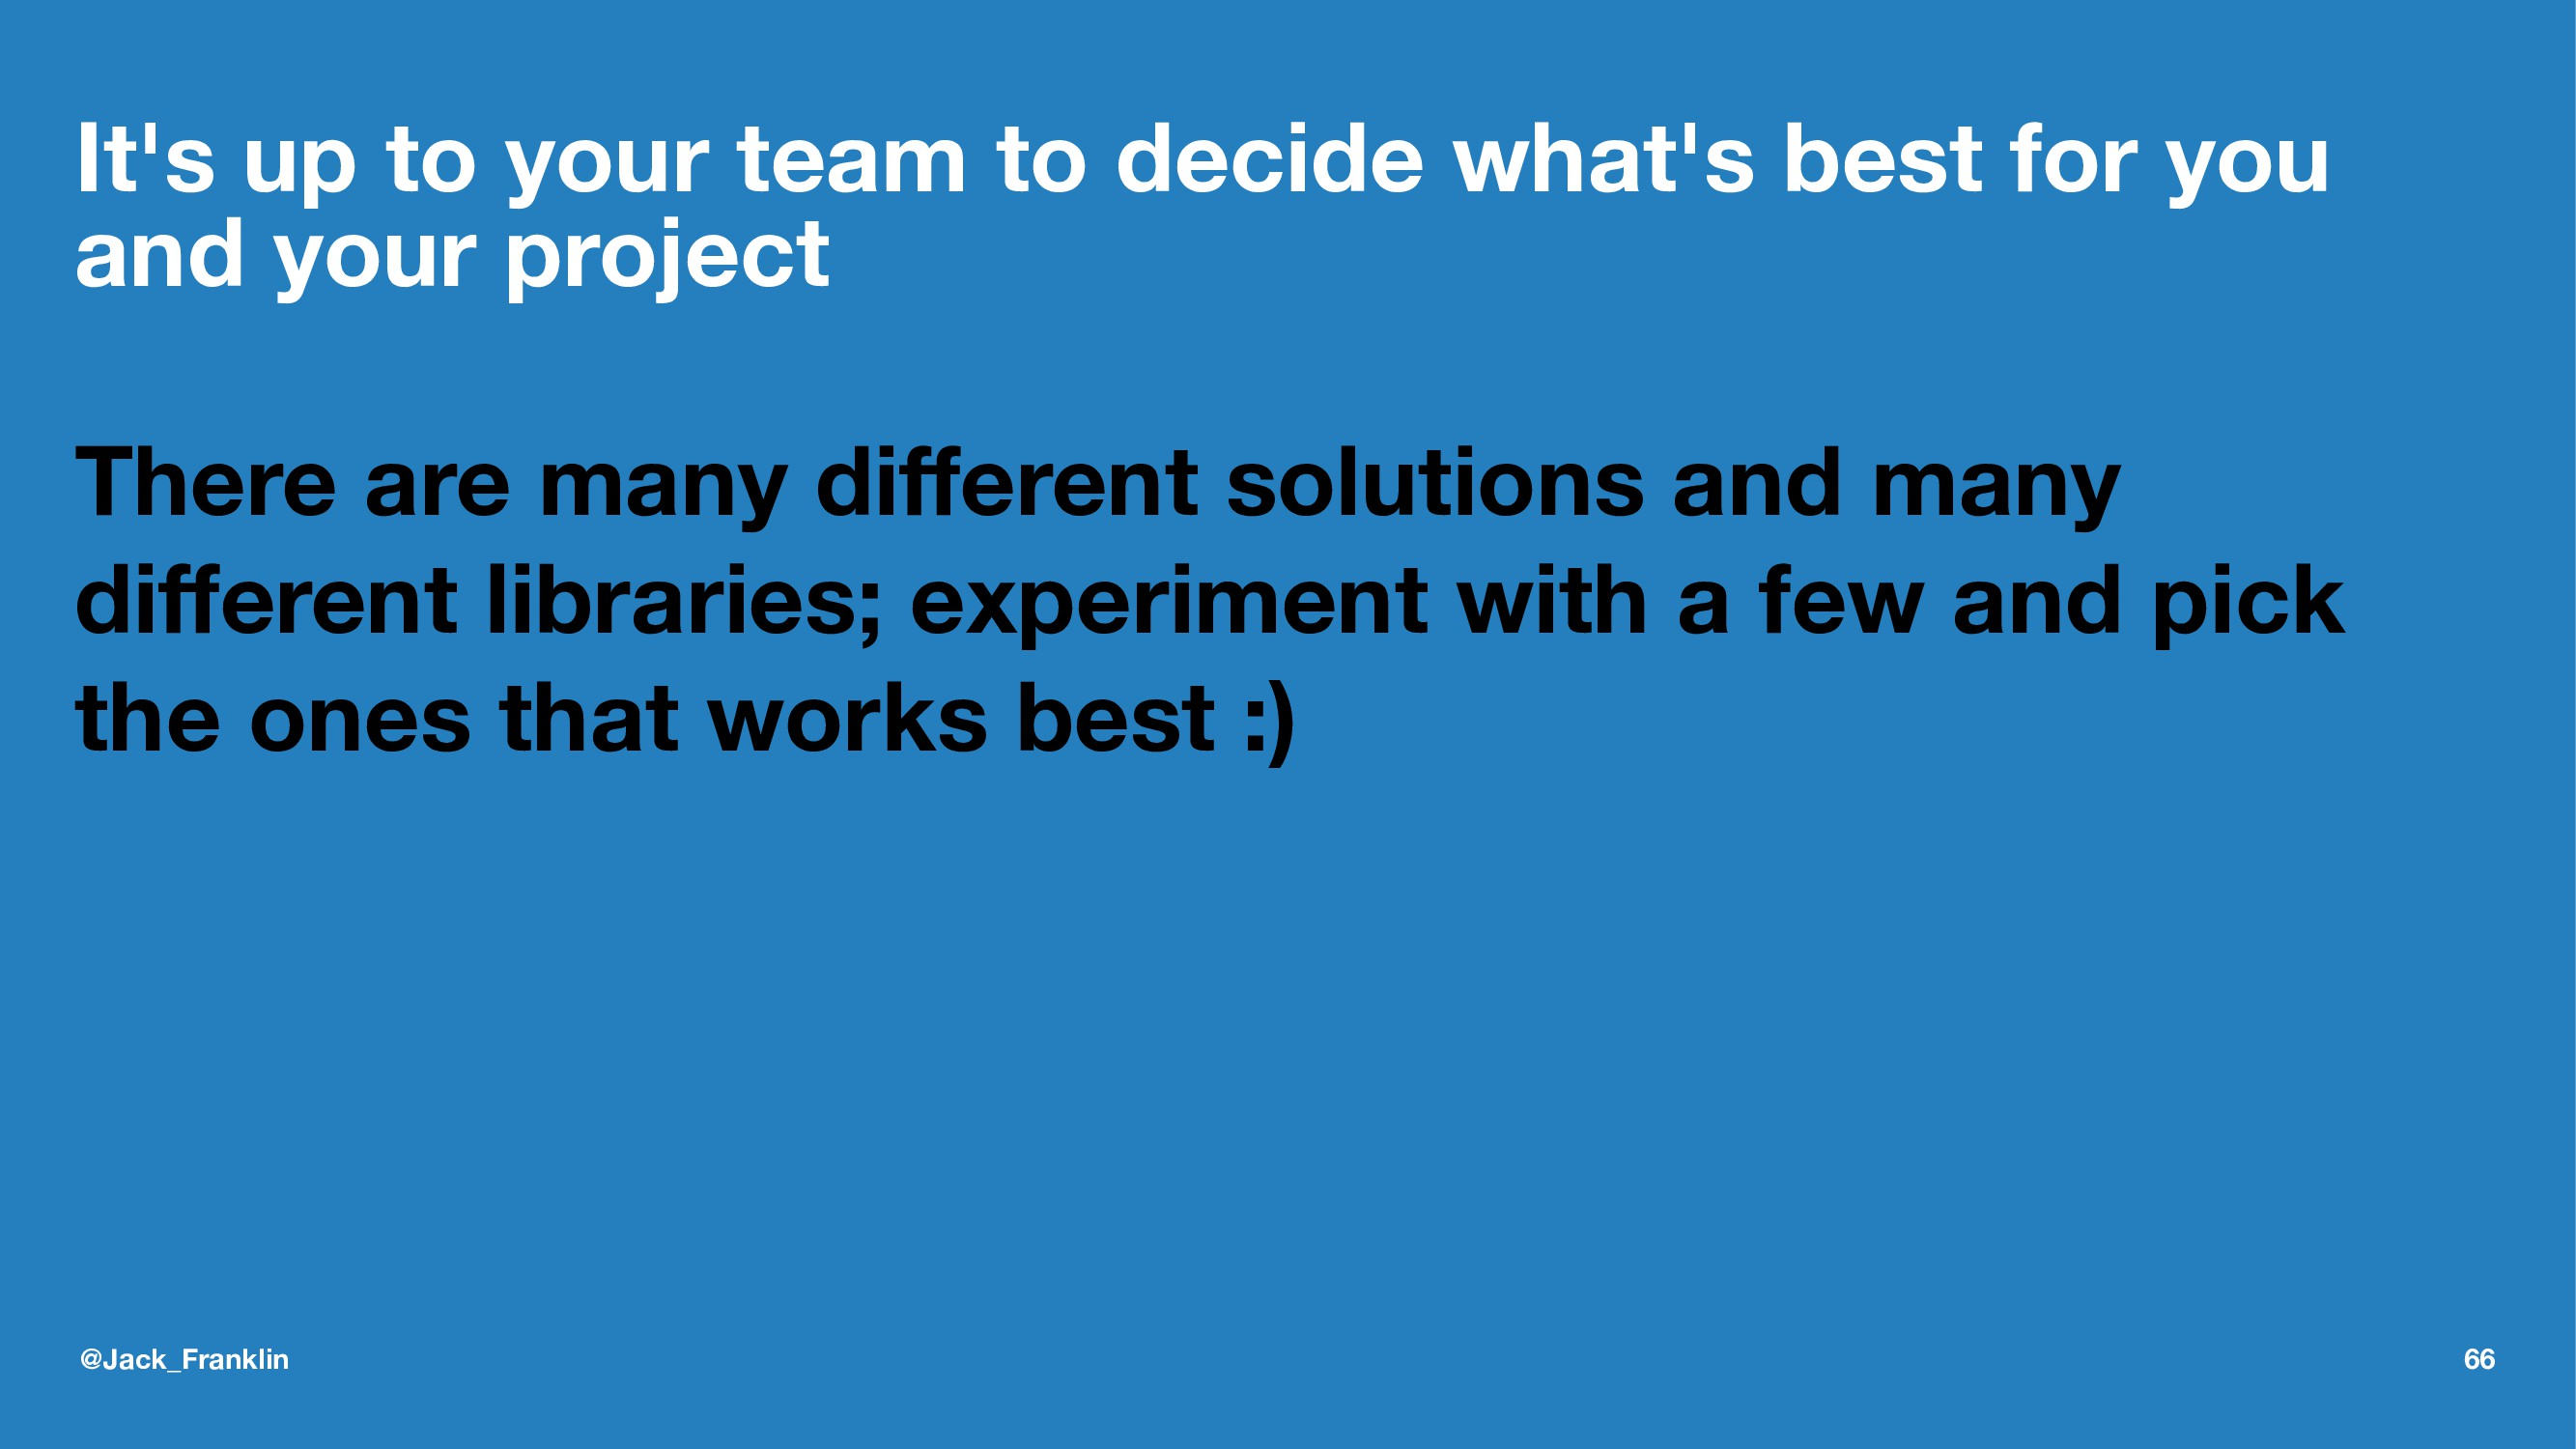 It's up to your team to decide what's best for ...